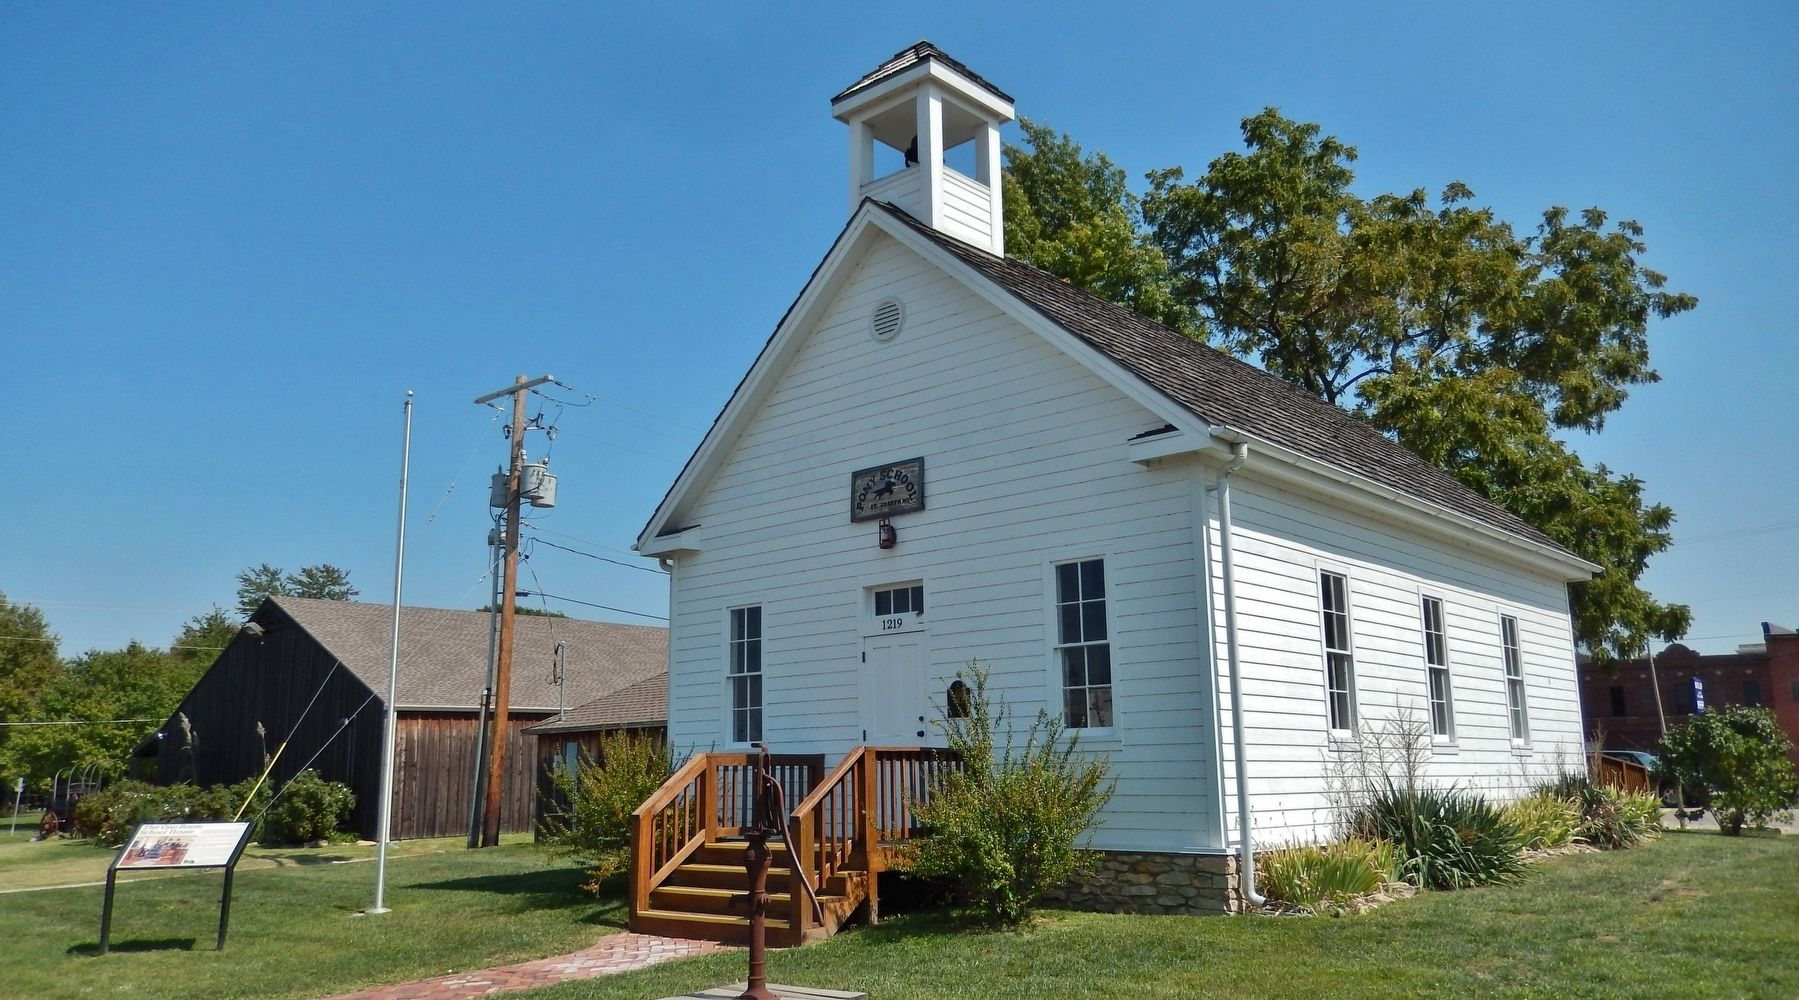 The One Room Schoolhouse Historical Marker